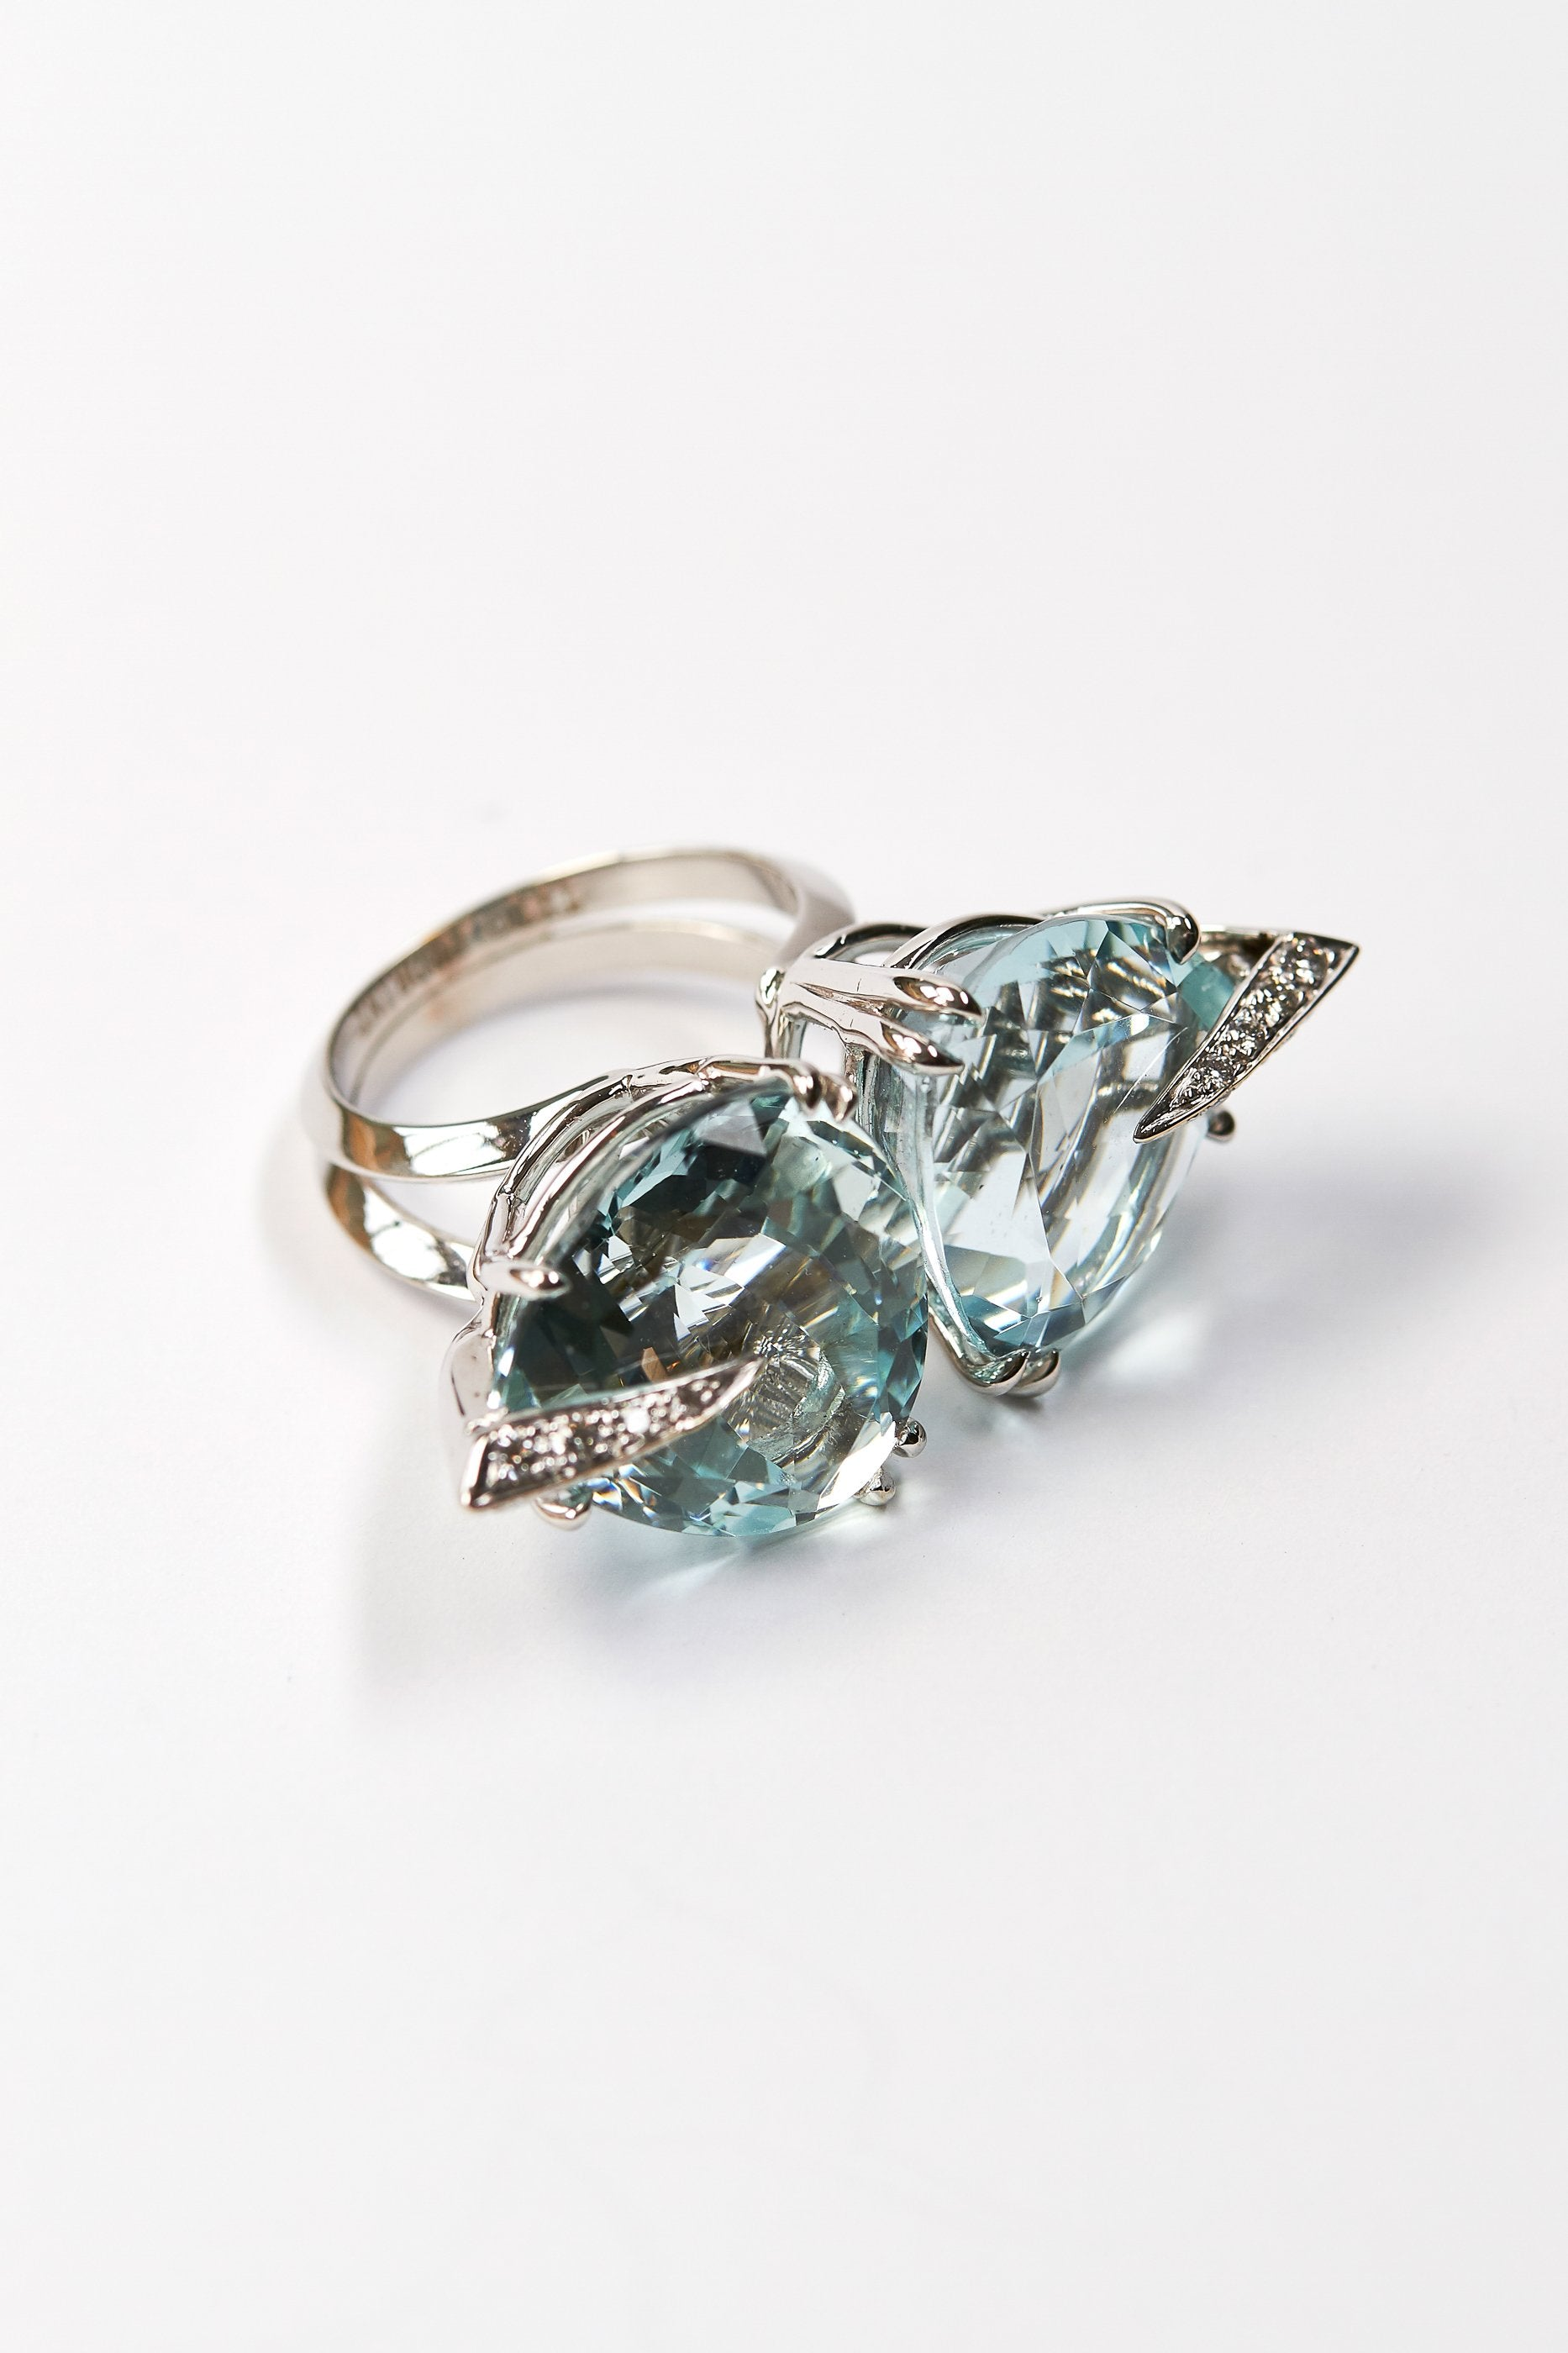 ring aquamarine a london jewellery bond street single bentley stone skinner